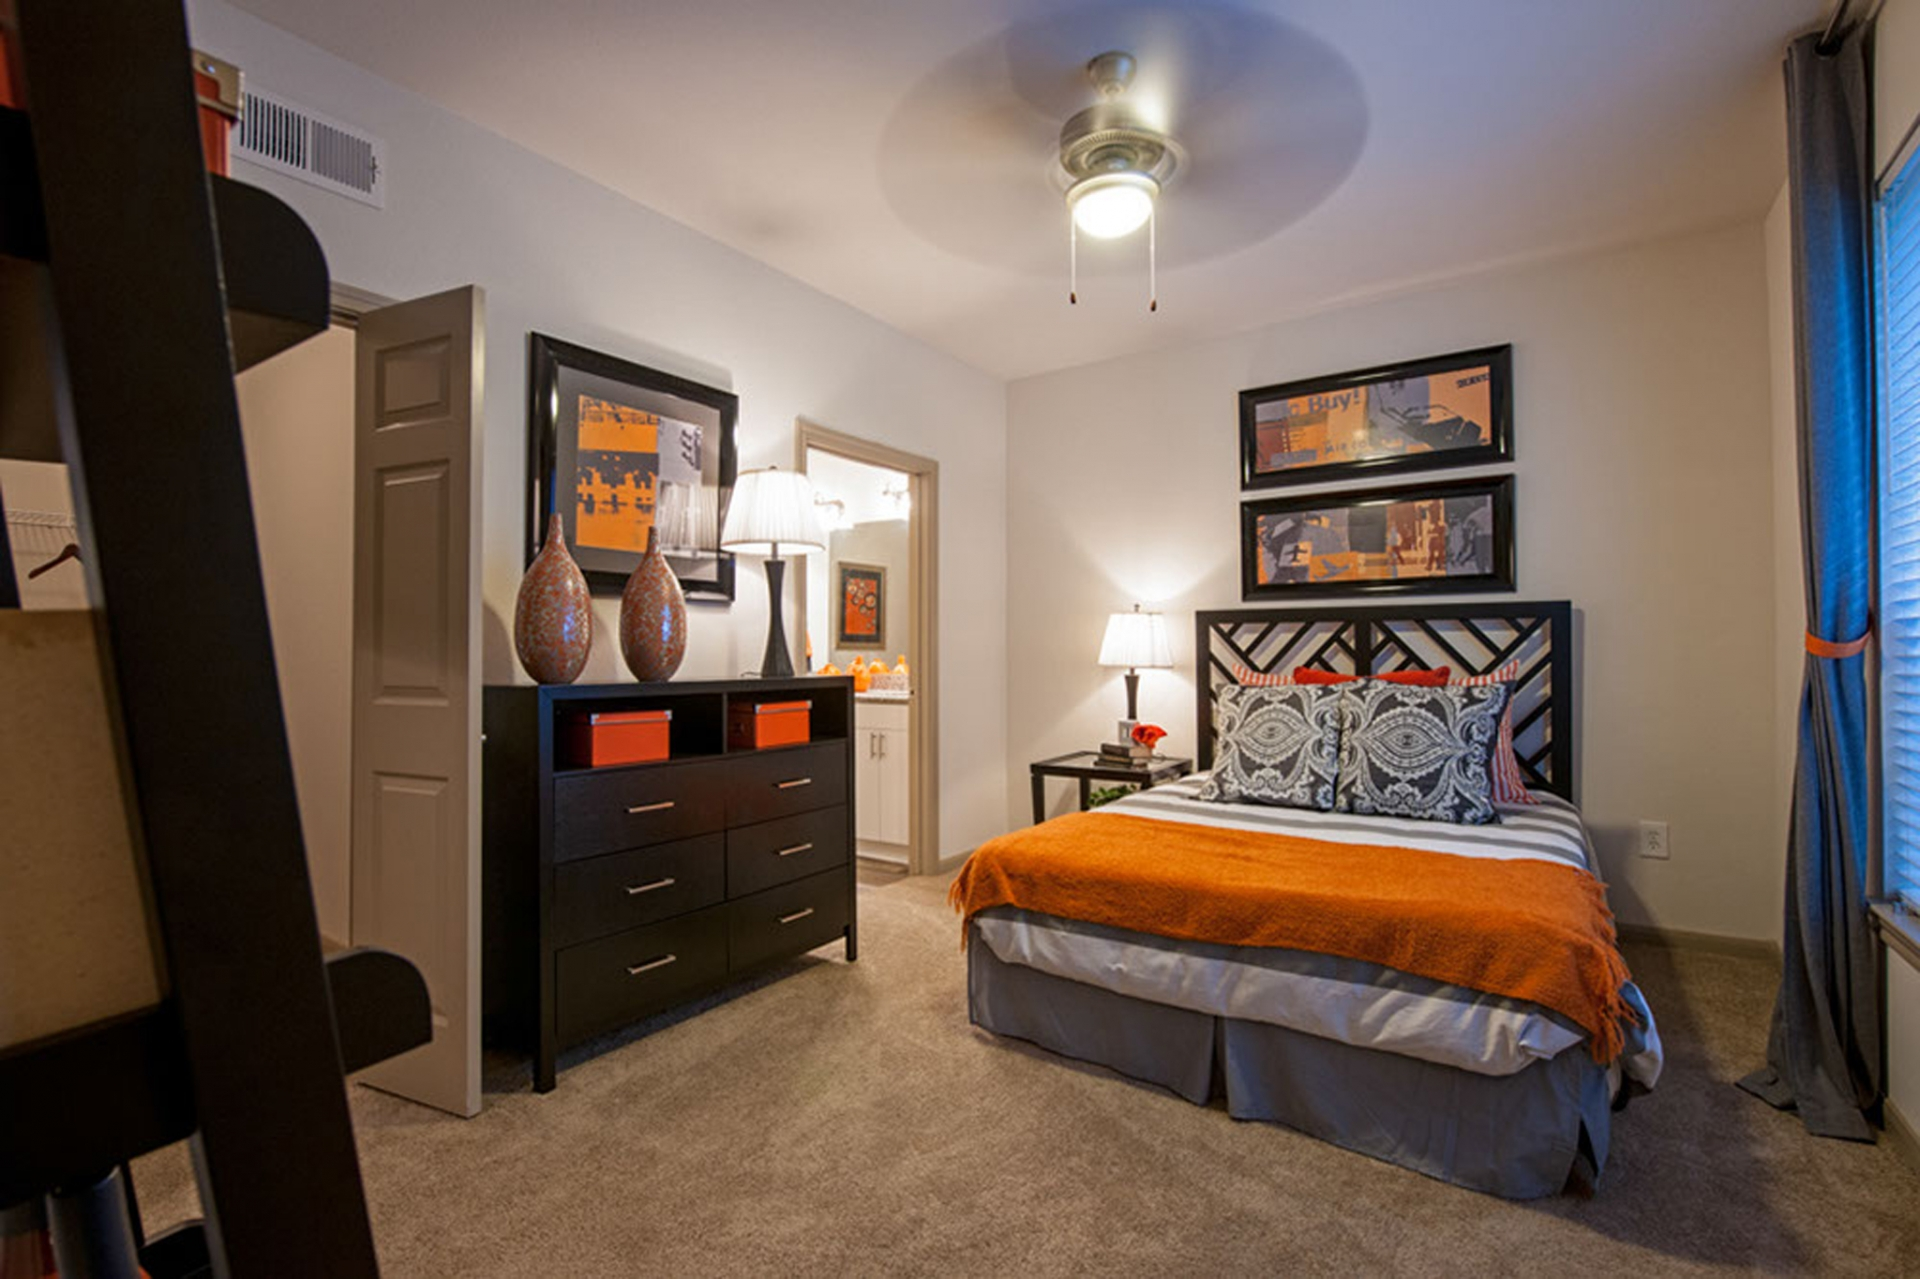 Camden Holly Springs Apartments image 4